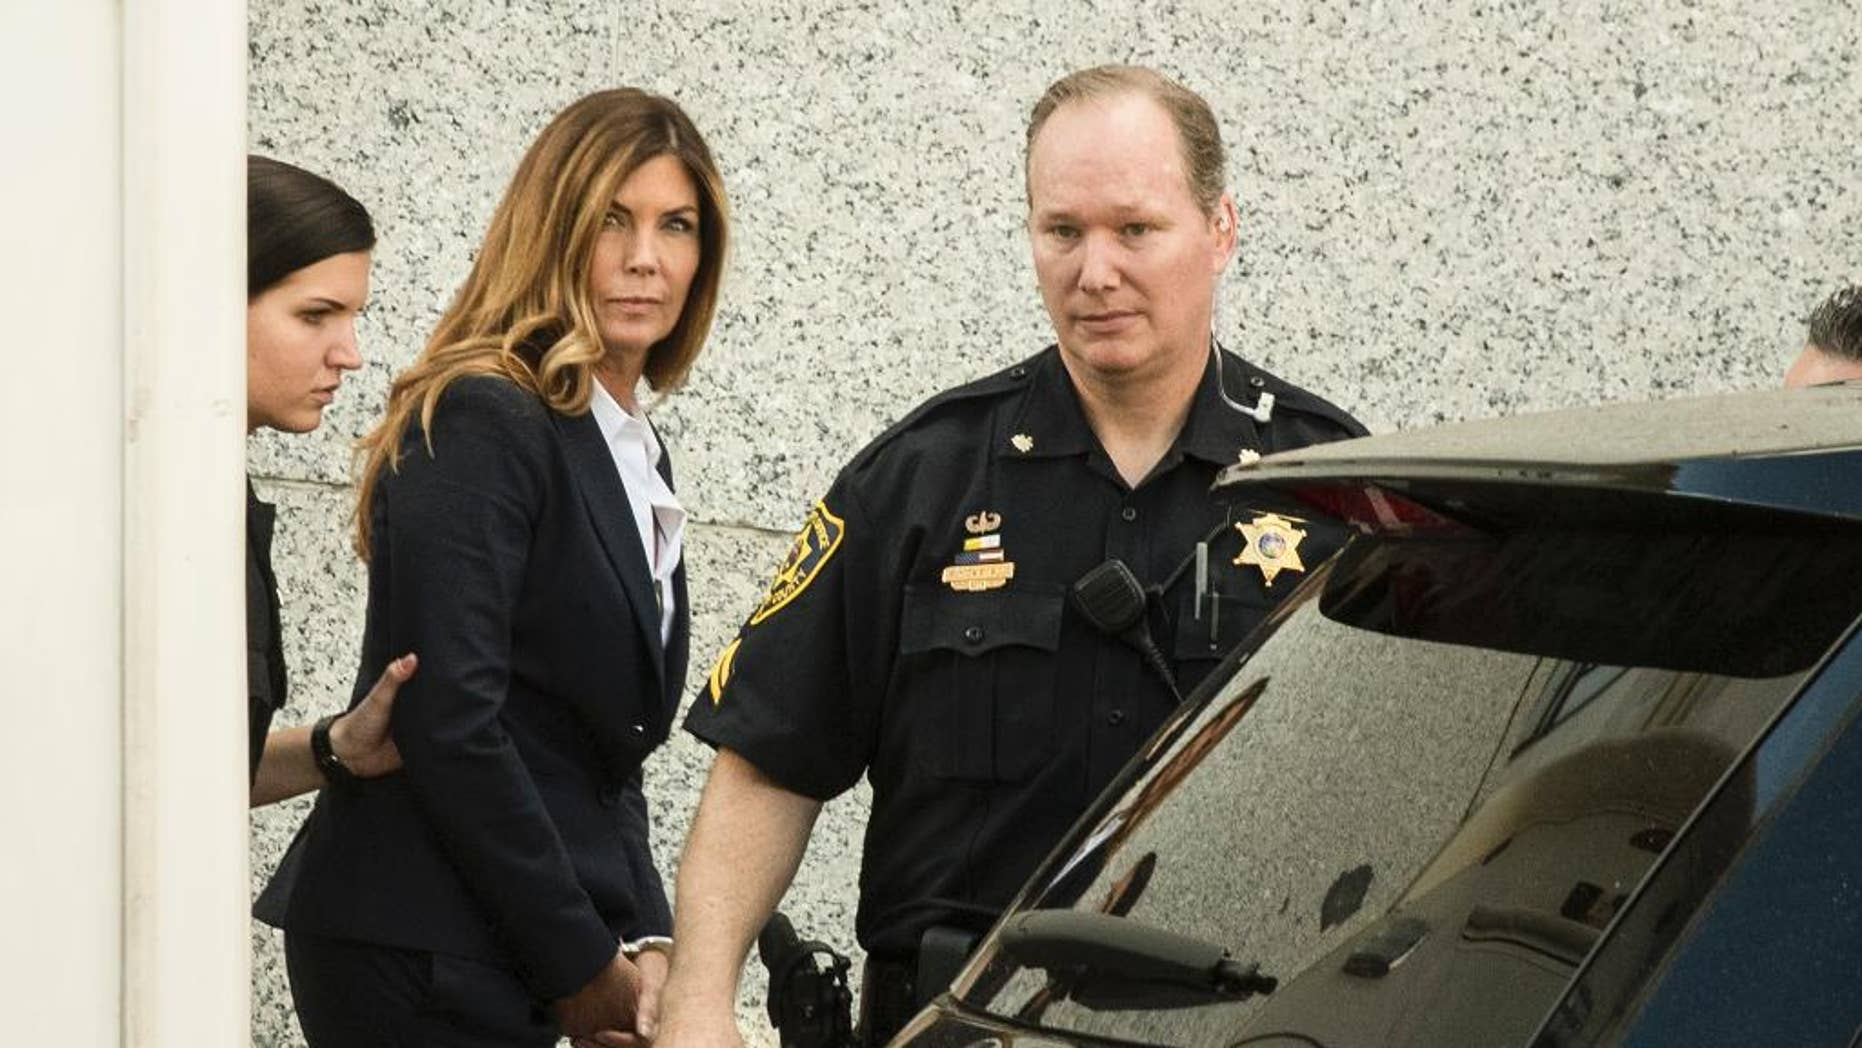 Former Pennsylvania Attorney General Kathleen Kane was sentenced to 10 to 23 months in jail for illegally disclosing details from a grand jury investigation to embarrass a rival and lying about it under oath. (AP Photo/Matt Rourke)